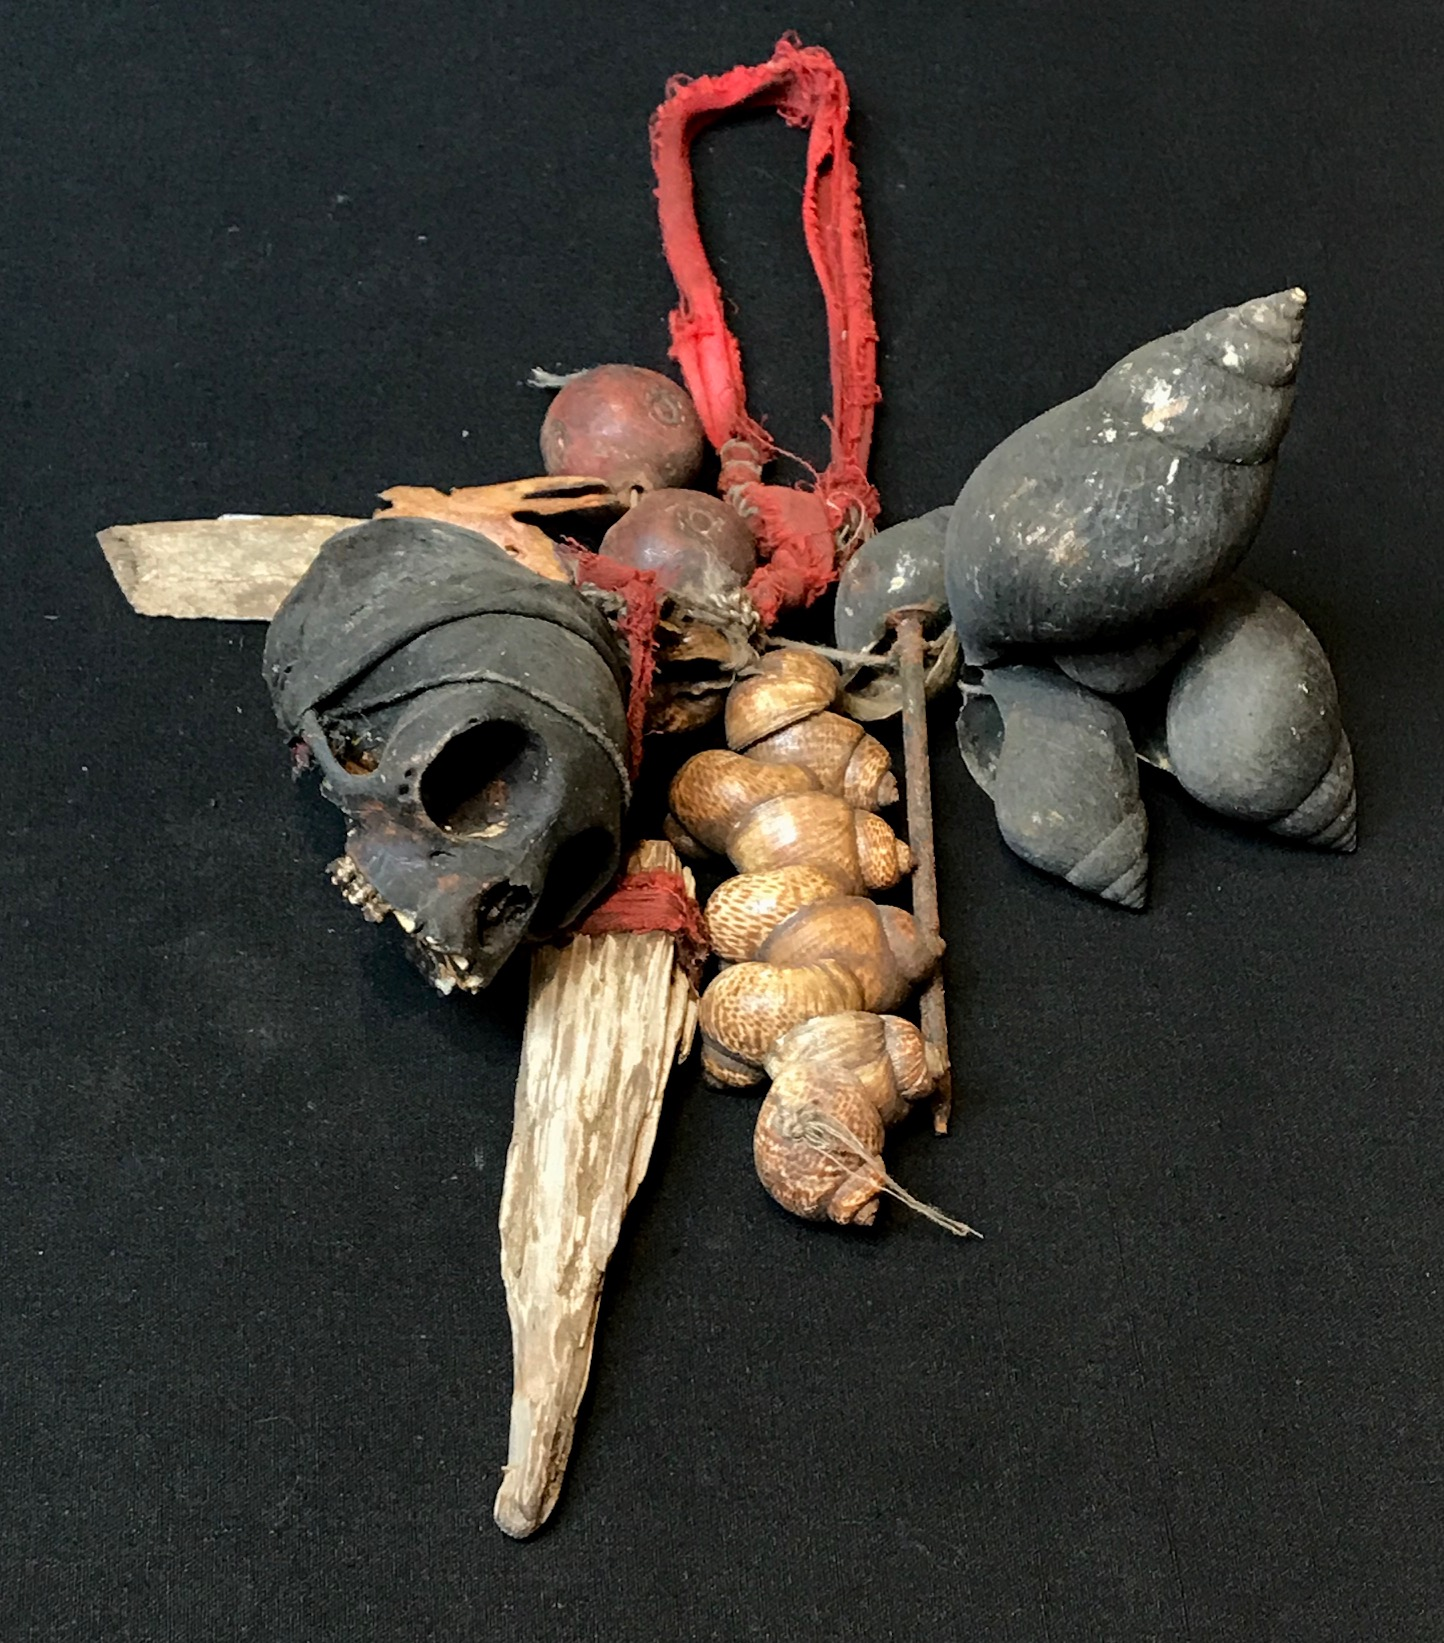 "Shaman's ritual dance rattle, Indonesia, Borneo, Dayak tribe, early 20th c., Monkey skull, sea shells, metal nail, ceramic beads, glass bead, Shaken to scare away evil or harmful spirits, 12"" x 7"""